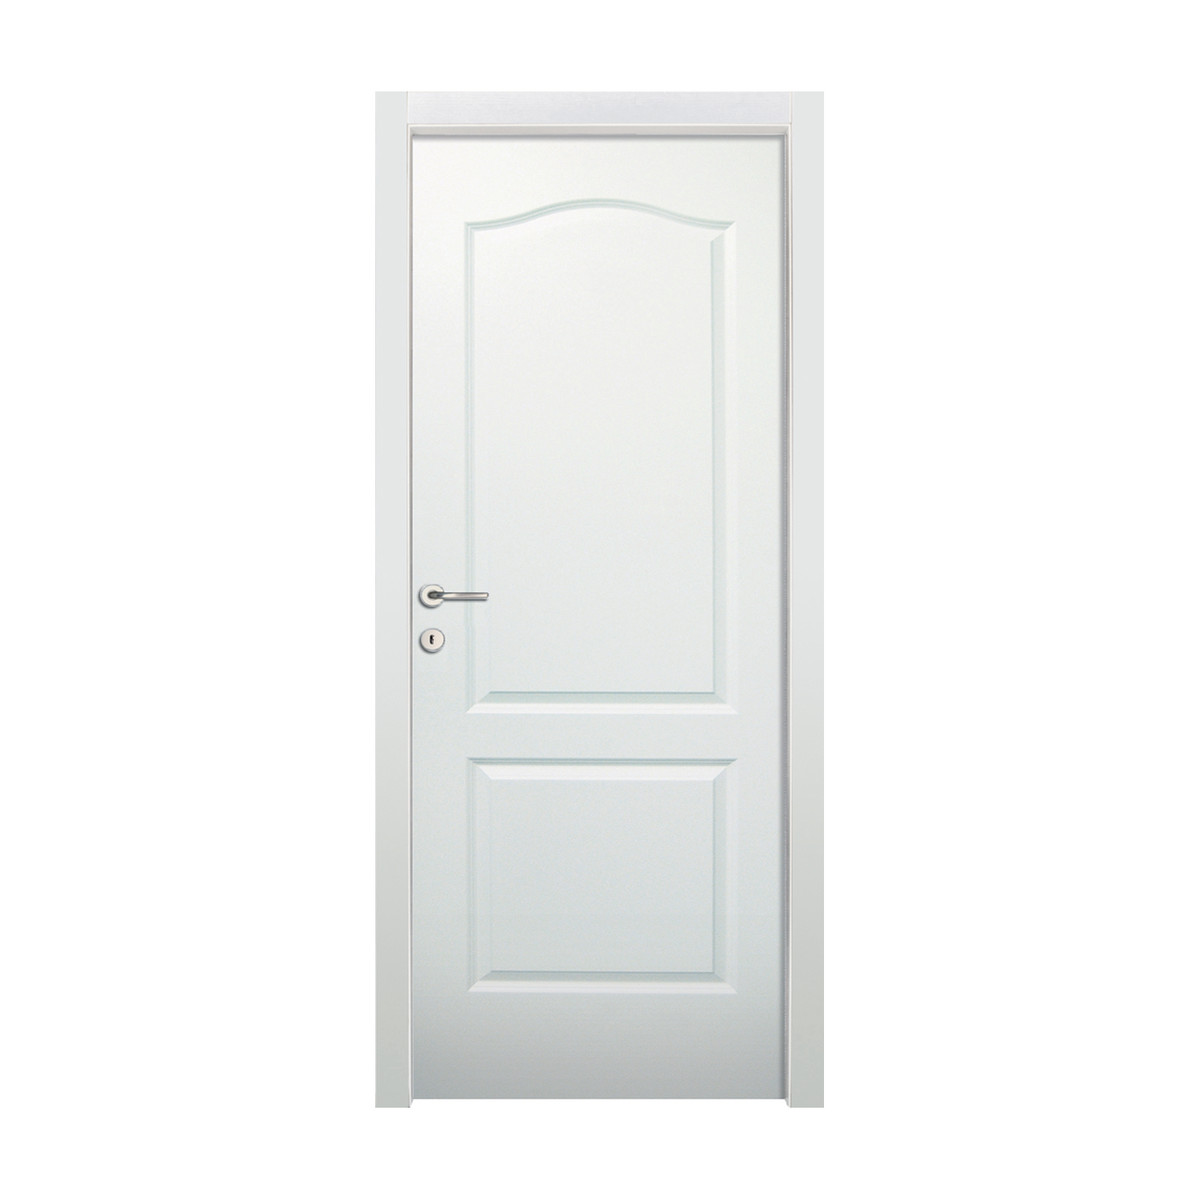 Porta da interno battente ipanema bianco 80 x h 210 cm dx for Porte 63cm leroy merlin